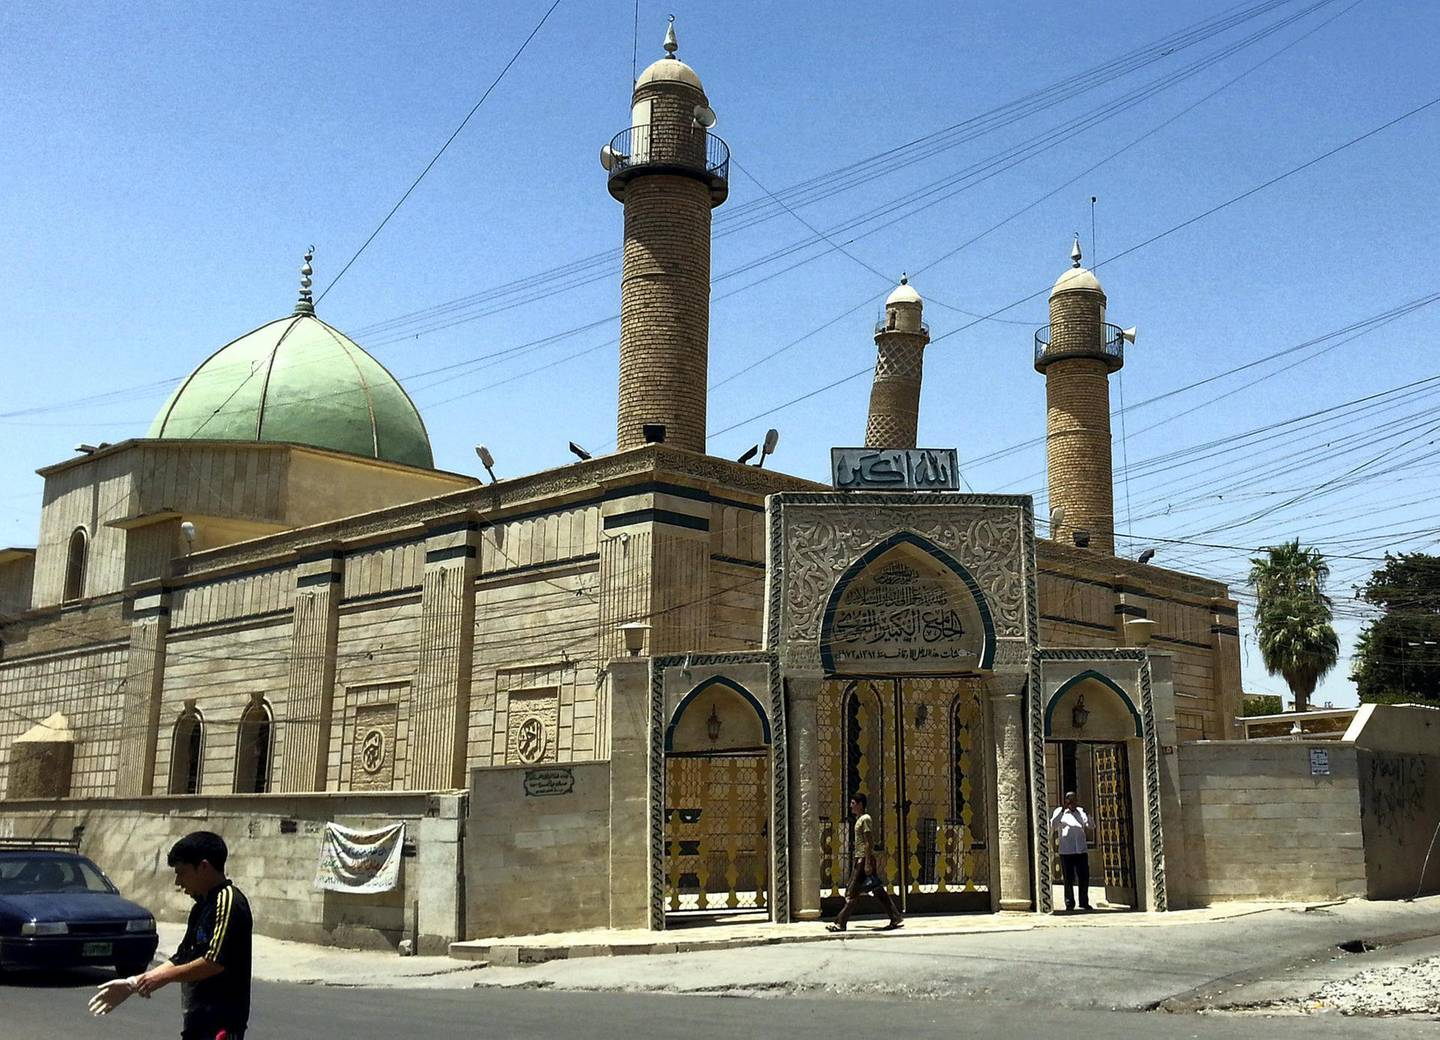 epa06041871 (FILE) - People walk in front of the Al-Noori Al-Kabeer mosque in Mosul, Iraq, 09 July 2014 (reissued 21 June 2017). According to media reports on 21 June 2017 citing Iraq's military, the Great Mosque of al-Nuri and its leaning minaret have been destroyed by members of the Islamic State militant group. Abu Bakr al-Baghdadi, the leader of the Sunni extremist group IS appeared for the first time in public at the mosque to declared caliphate on 04 July 2014.  EPA/STR *** Local Caption *** 53599216